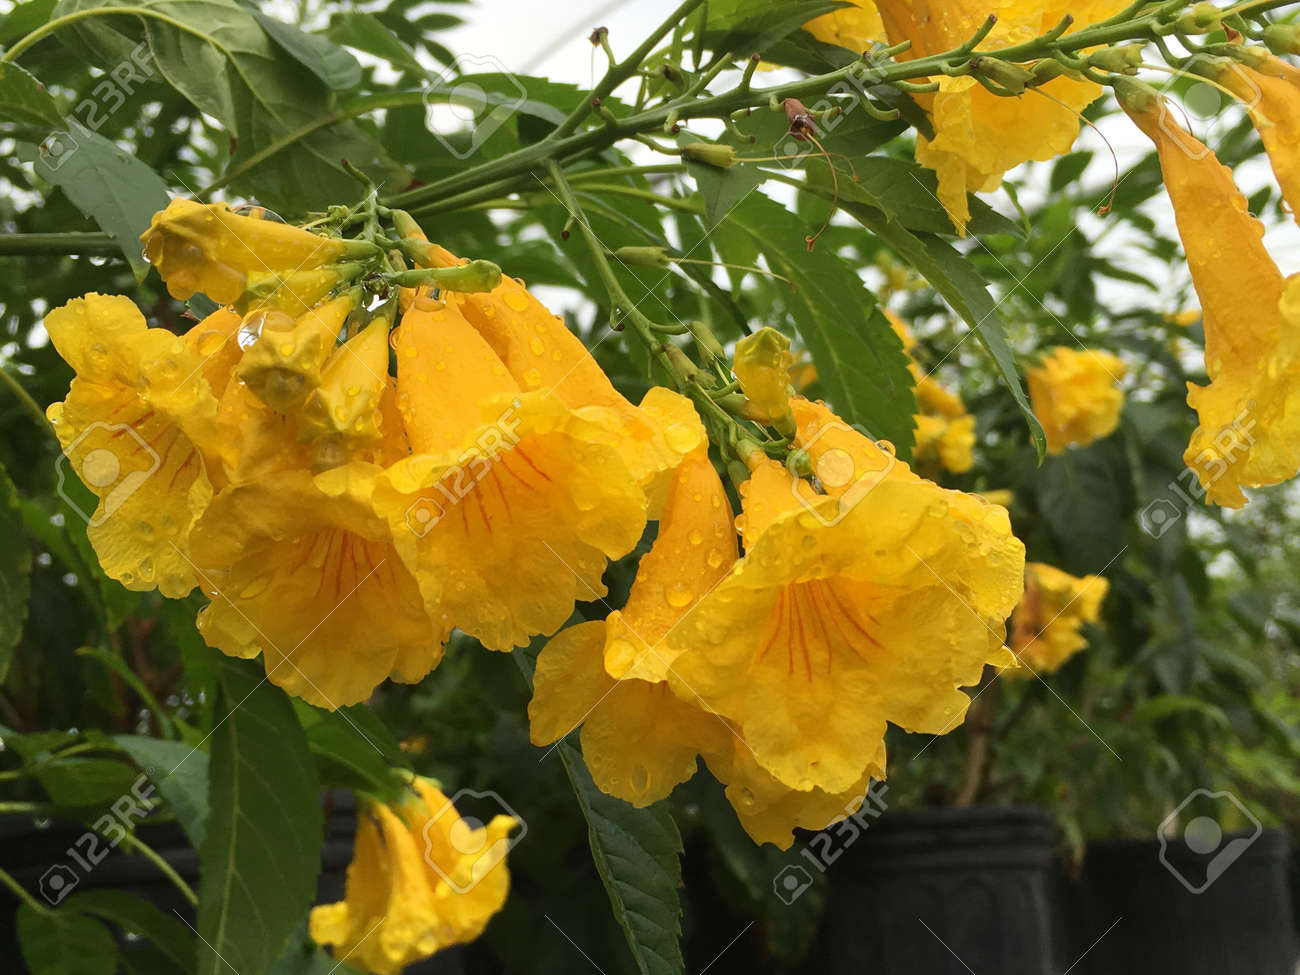 Esperanza Yellow Bells Plant In Full Bloom With Yellow Flowers